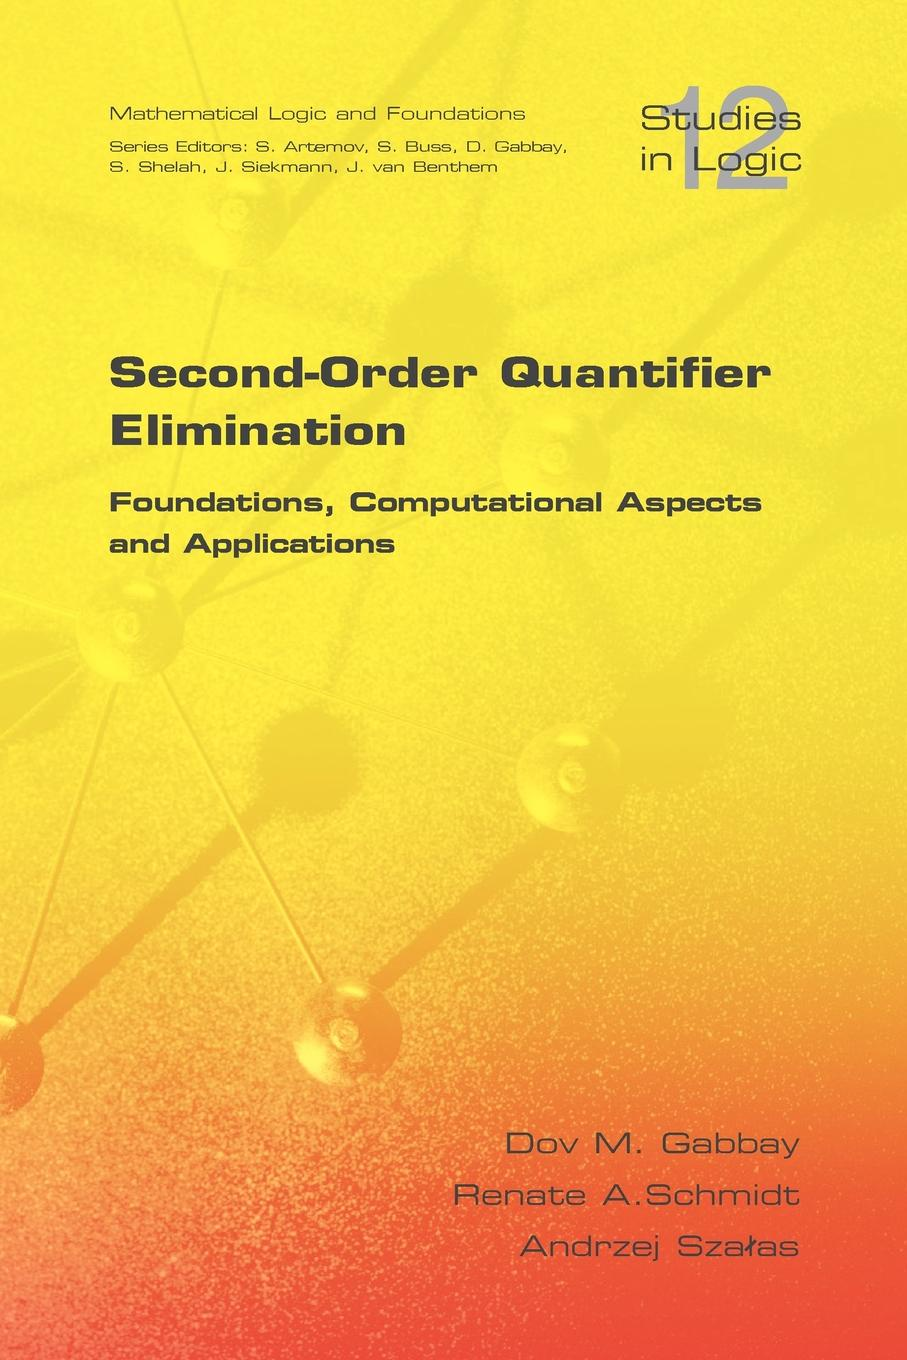 D. M. Gabbay, R. Schmidt, A. Szalas Second Order Quantifier Elimination. Foundations, Computational Aspects and Applications this item is for making up price for specified order